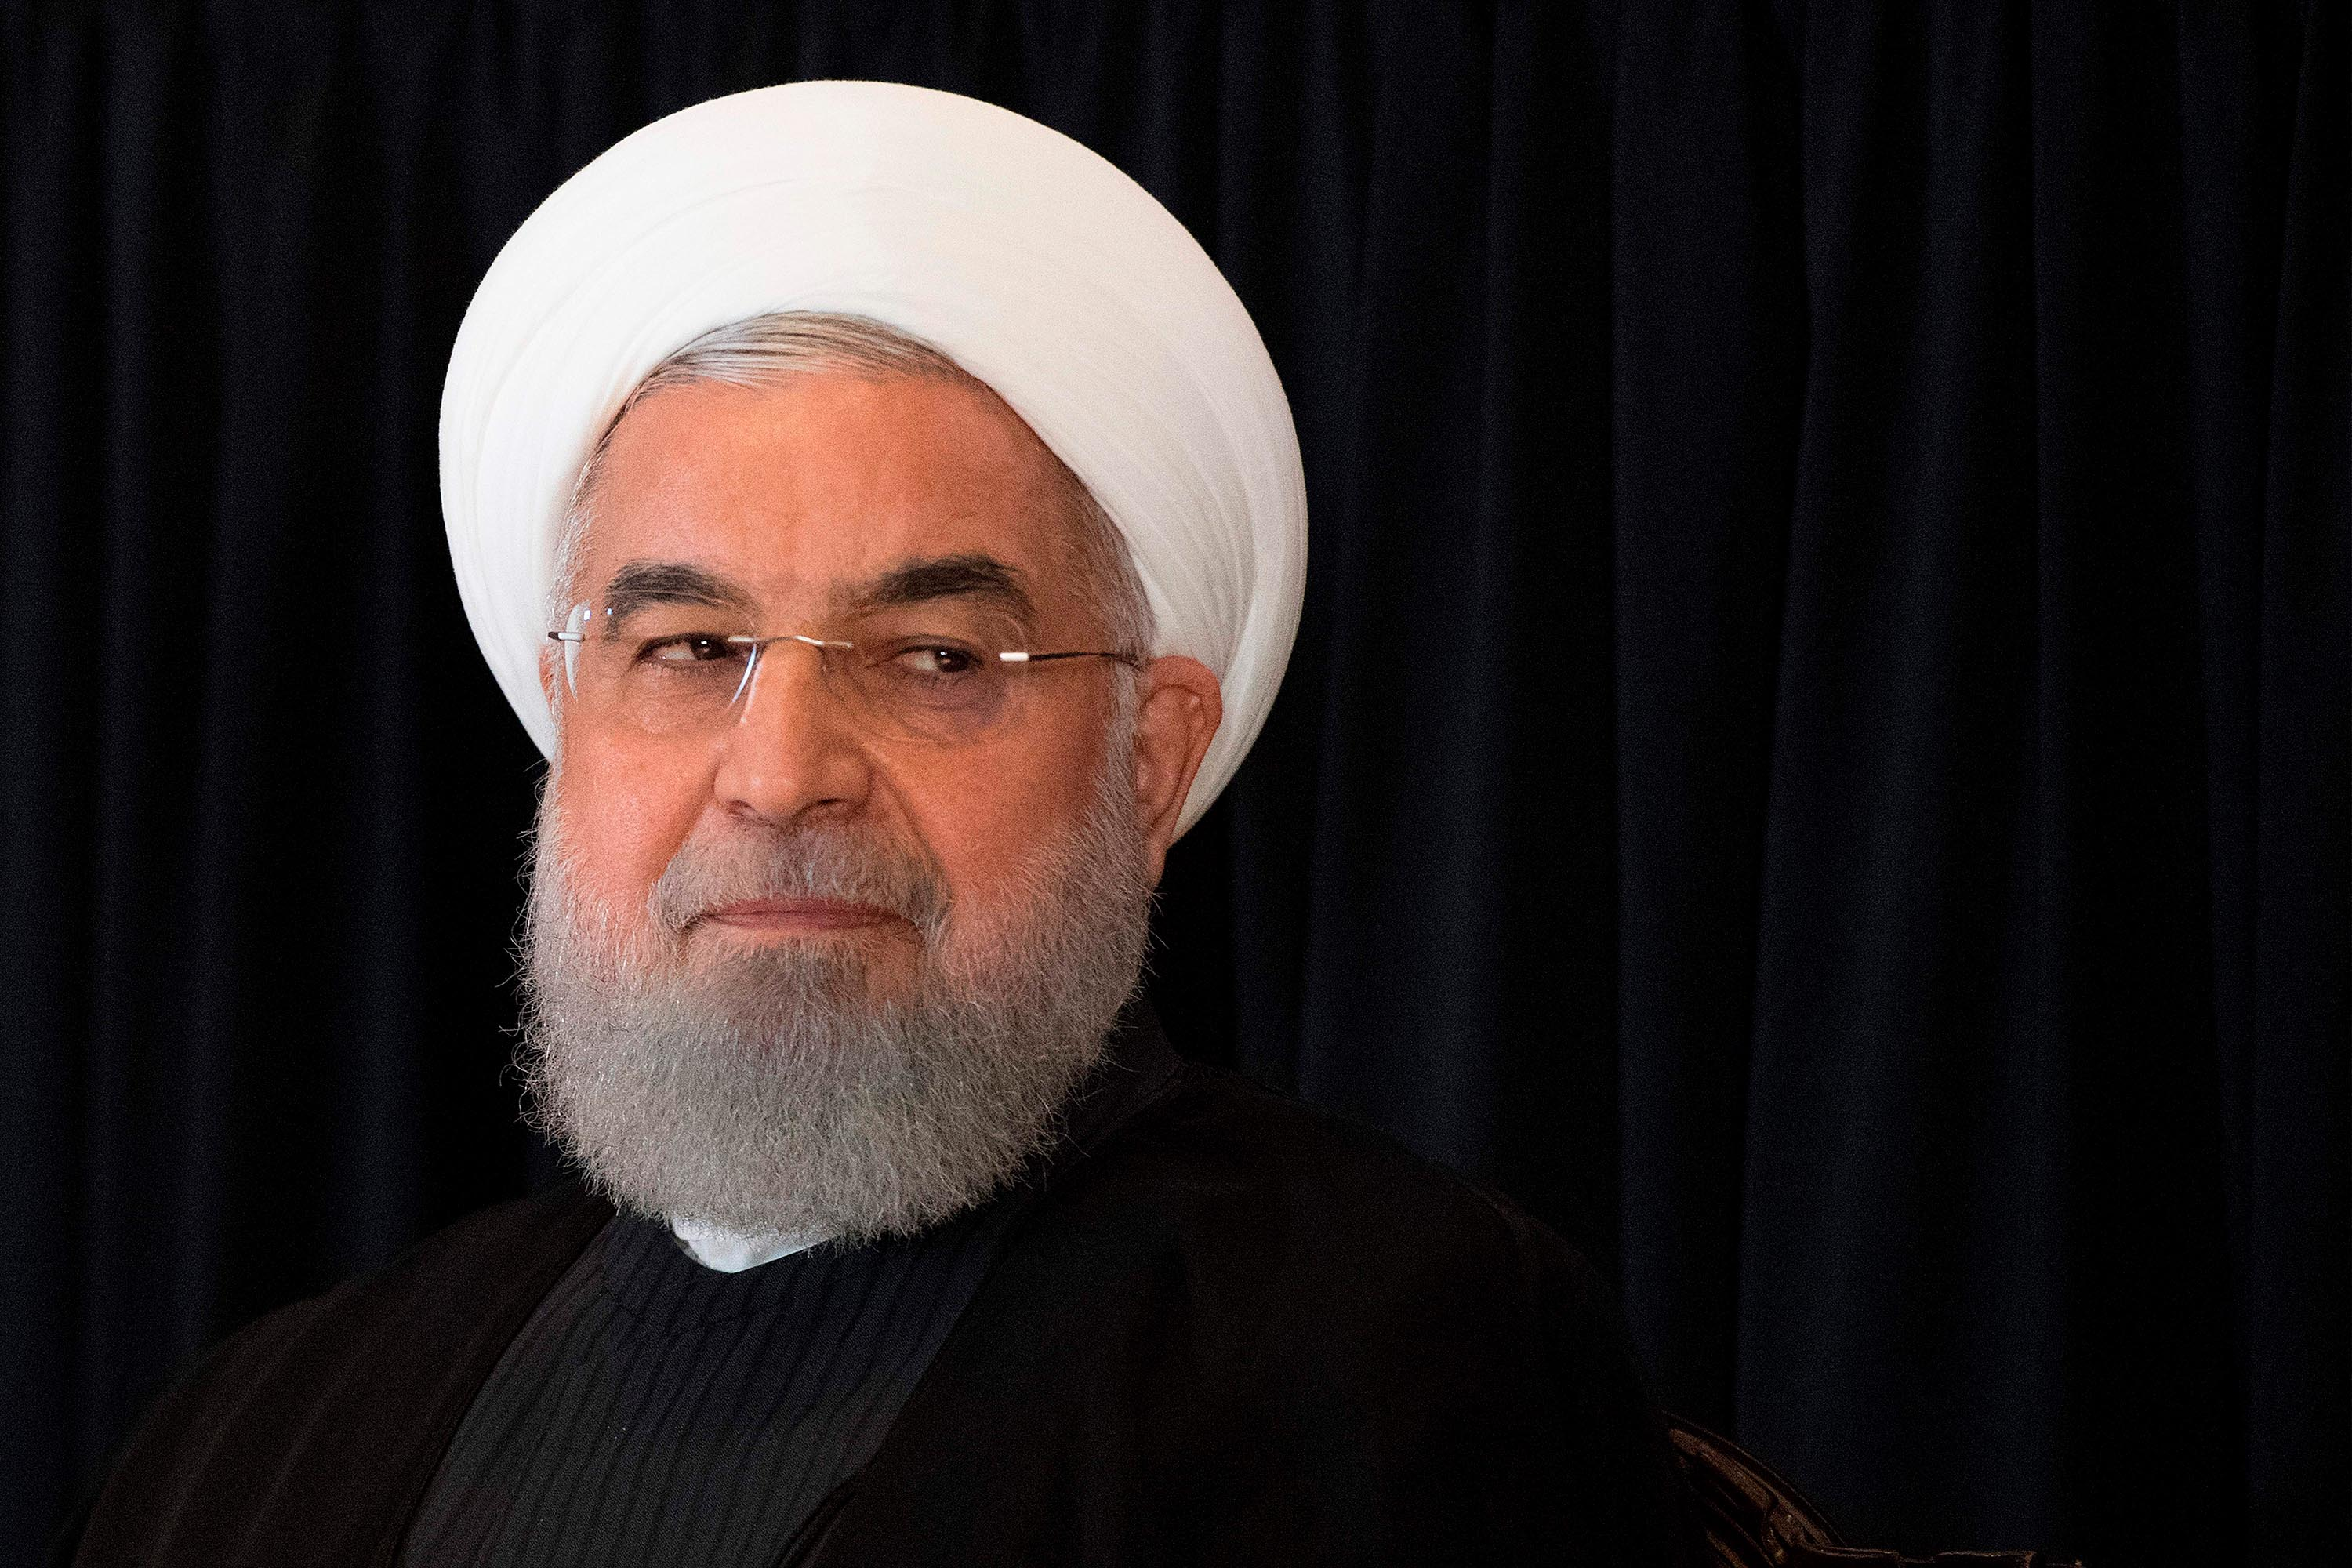 Iranian President Hassan Rouhani speaks during a news conference in New York in September 2018.